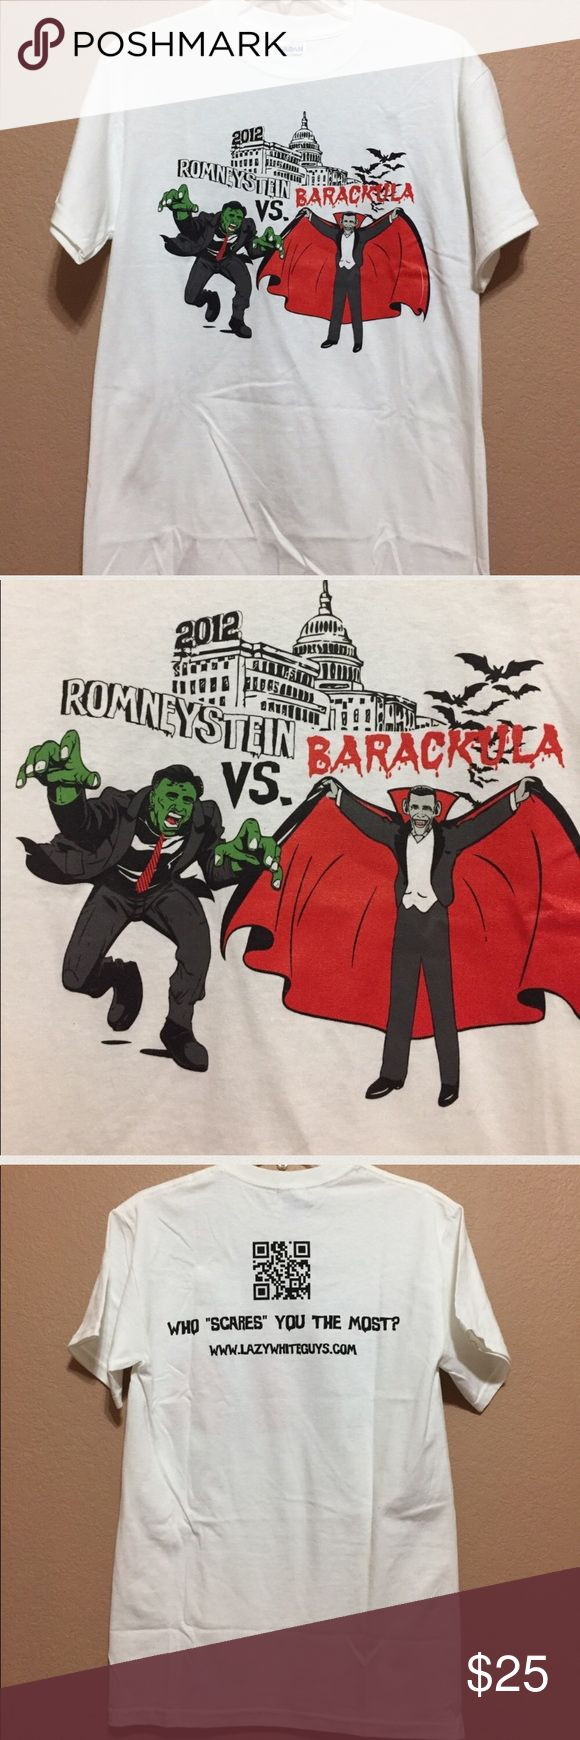 """Political Tshirt - Romneystein vs Barackula Political Tshirt from 2012. Unisex small. Looks long. Never worn.  Measurements: Underarm to underarm 18"""" length 28"""". 🚫no low ball offers Tops Tees - Short Sleeve"""